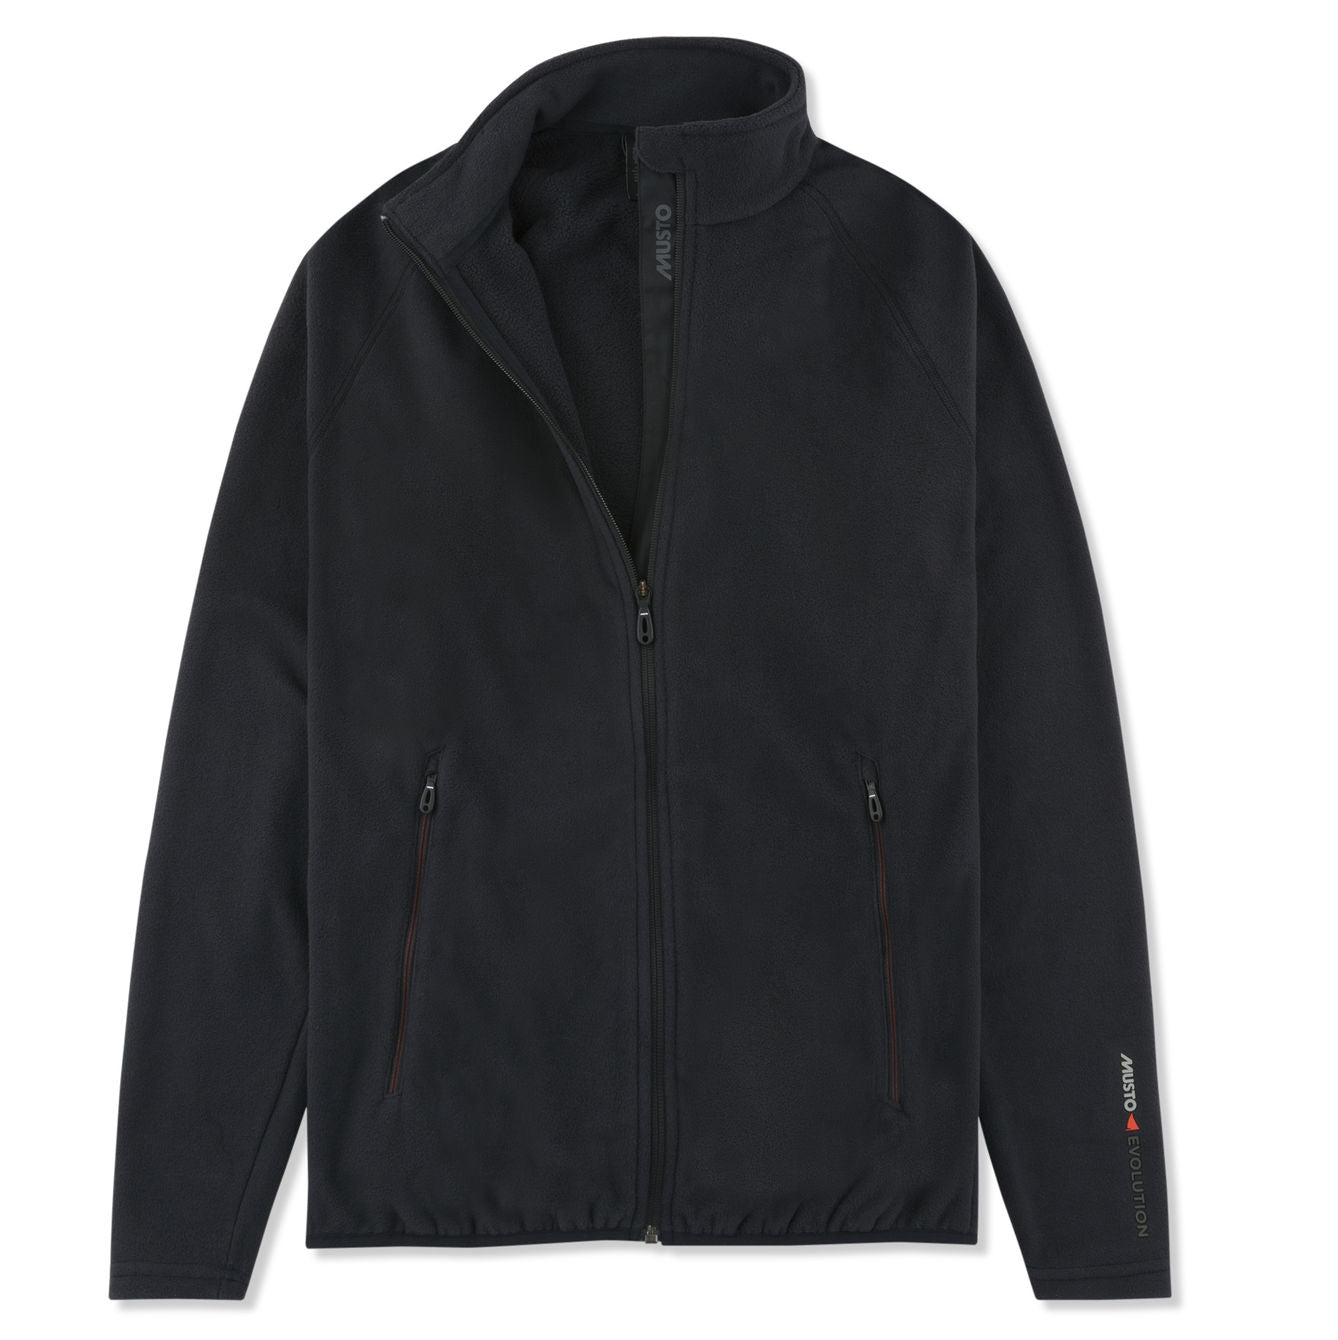 CREW XVR FLEECE JACKET